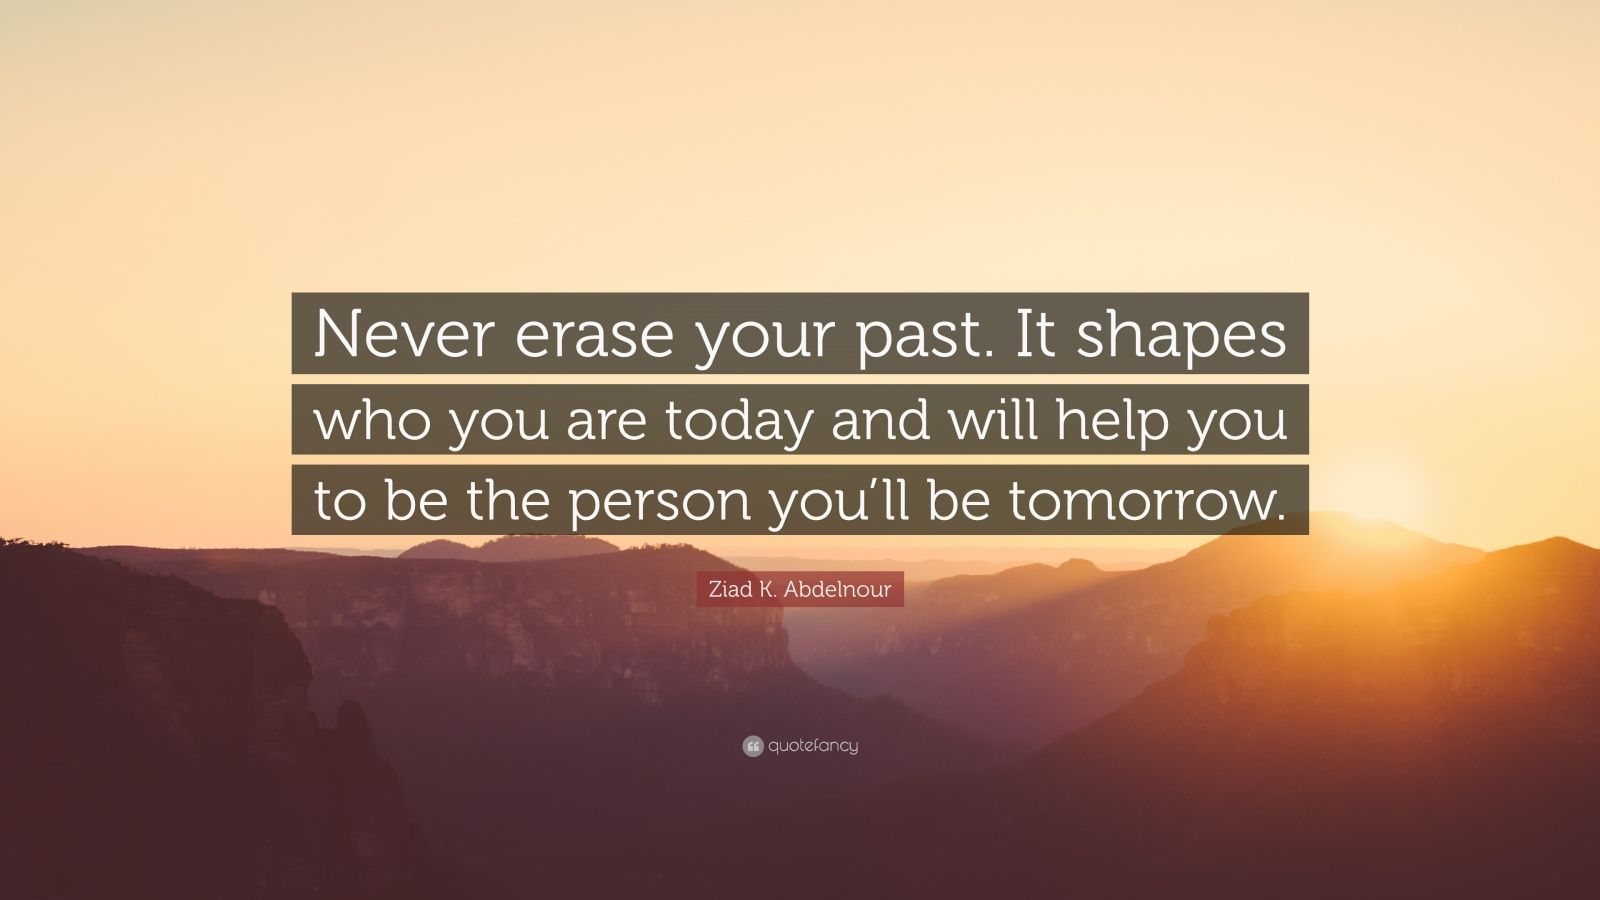 """Ziad K. Abdelnour Quote: """"Never erase your past. It shapes who you are today and will help you to be the person you'll be tomorrow."""""""